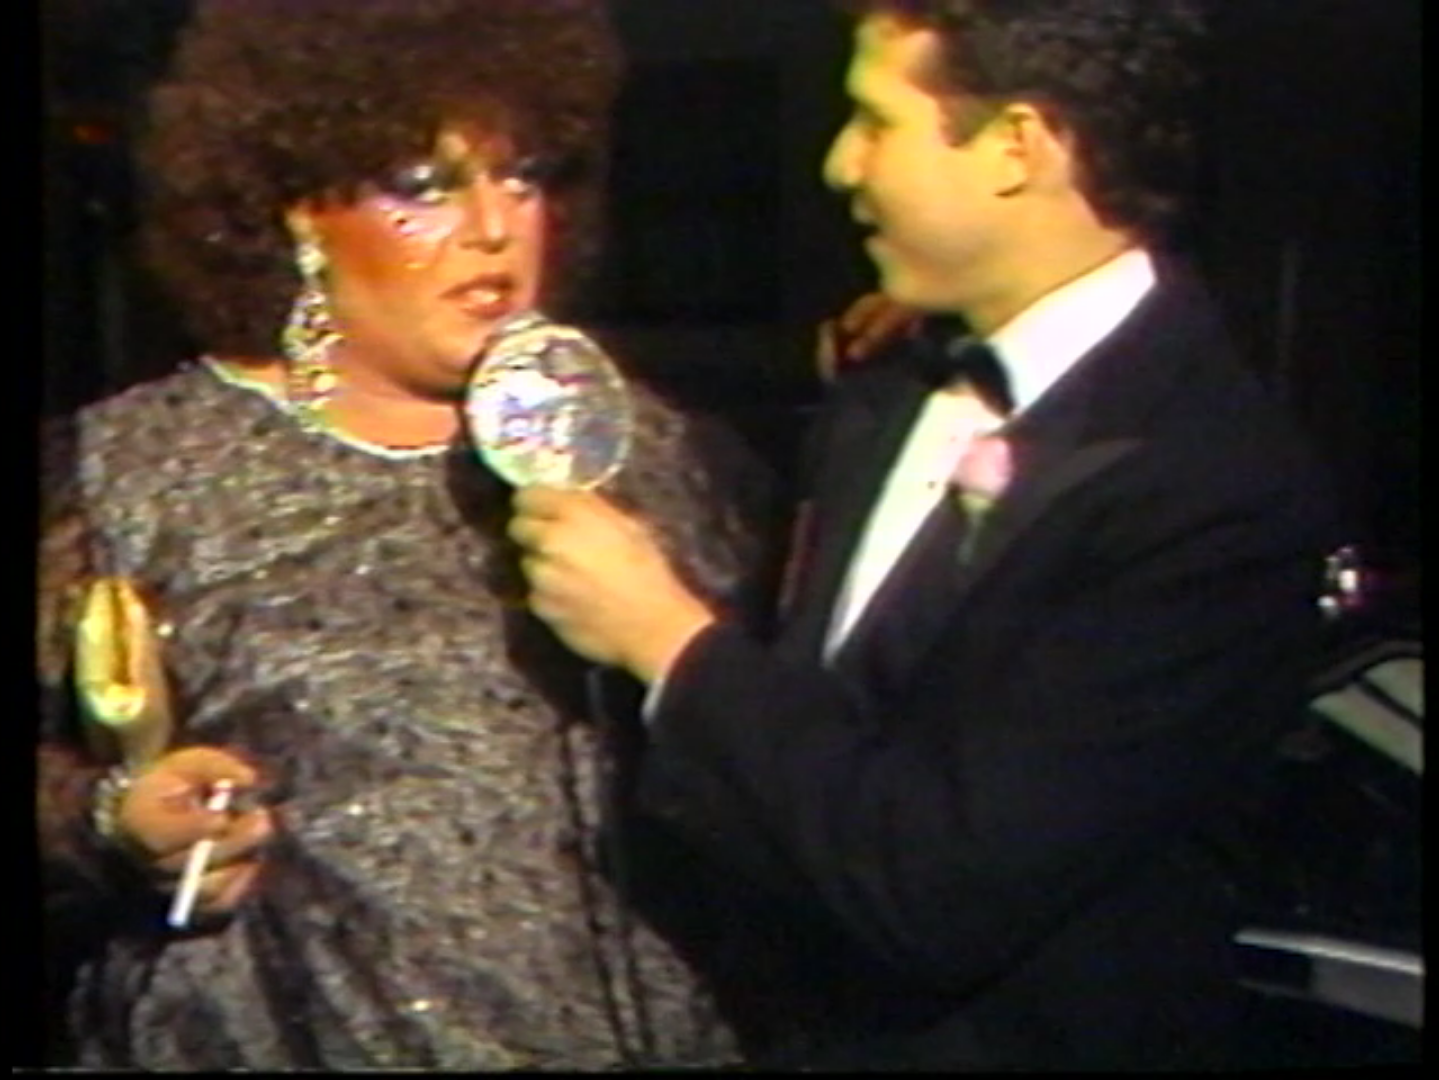 Visiting the Copacabana. 1985. U-matic tape. Still from the item Gay Morning America, Season 2, Show 12.